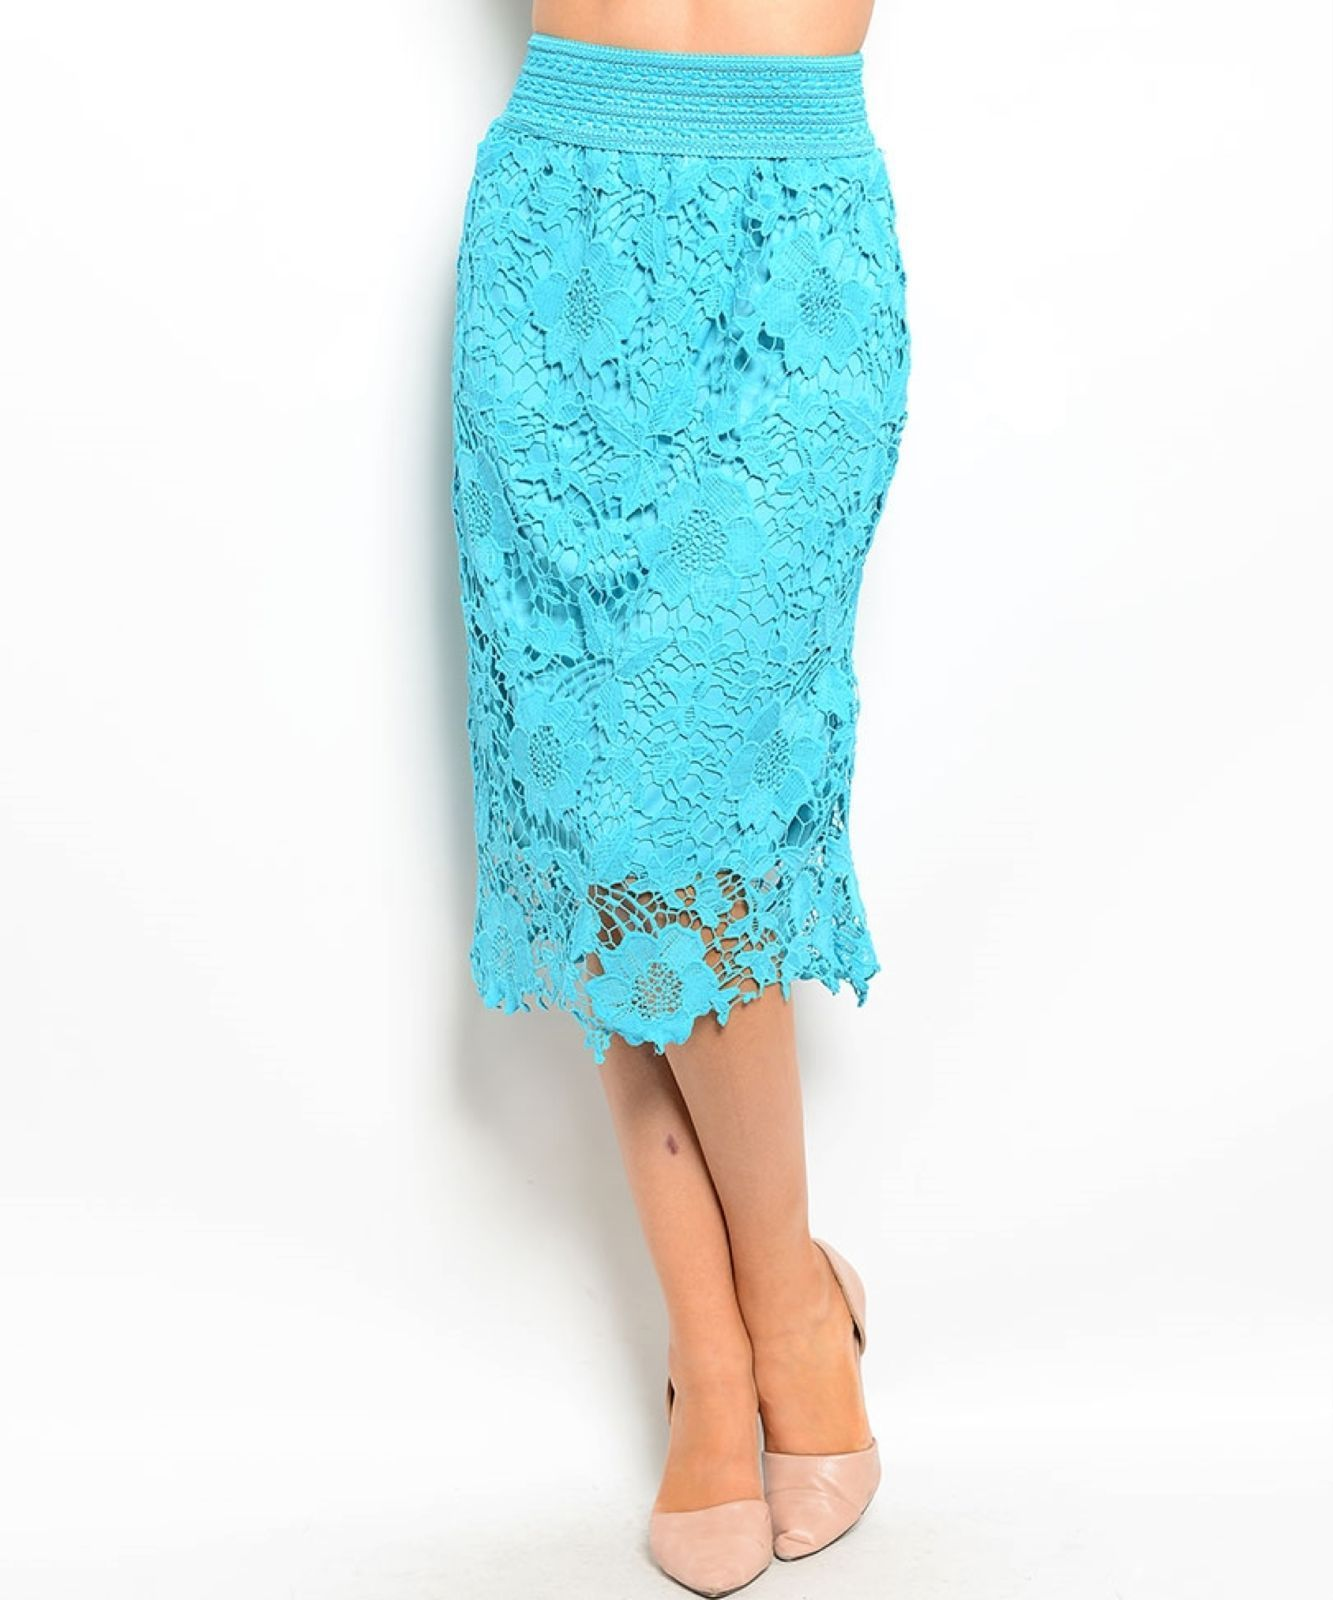 Image 1 of Chic Crochet Lace Lined Jr Skirt, Cocktail Club Wedding Party, Fuchsia or Aqua -